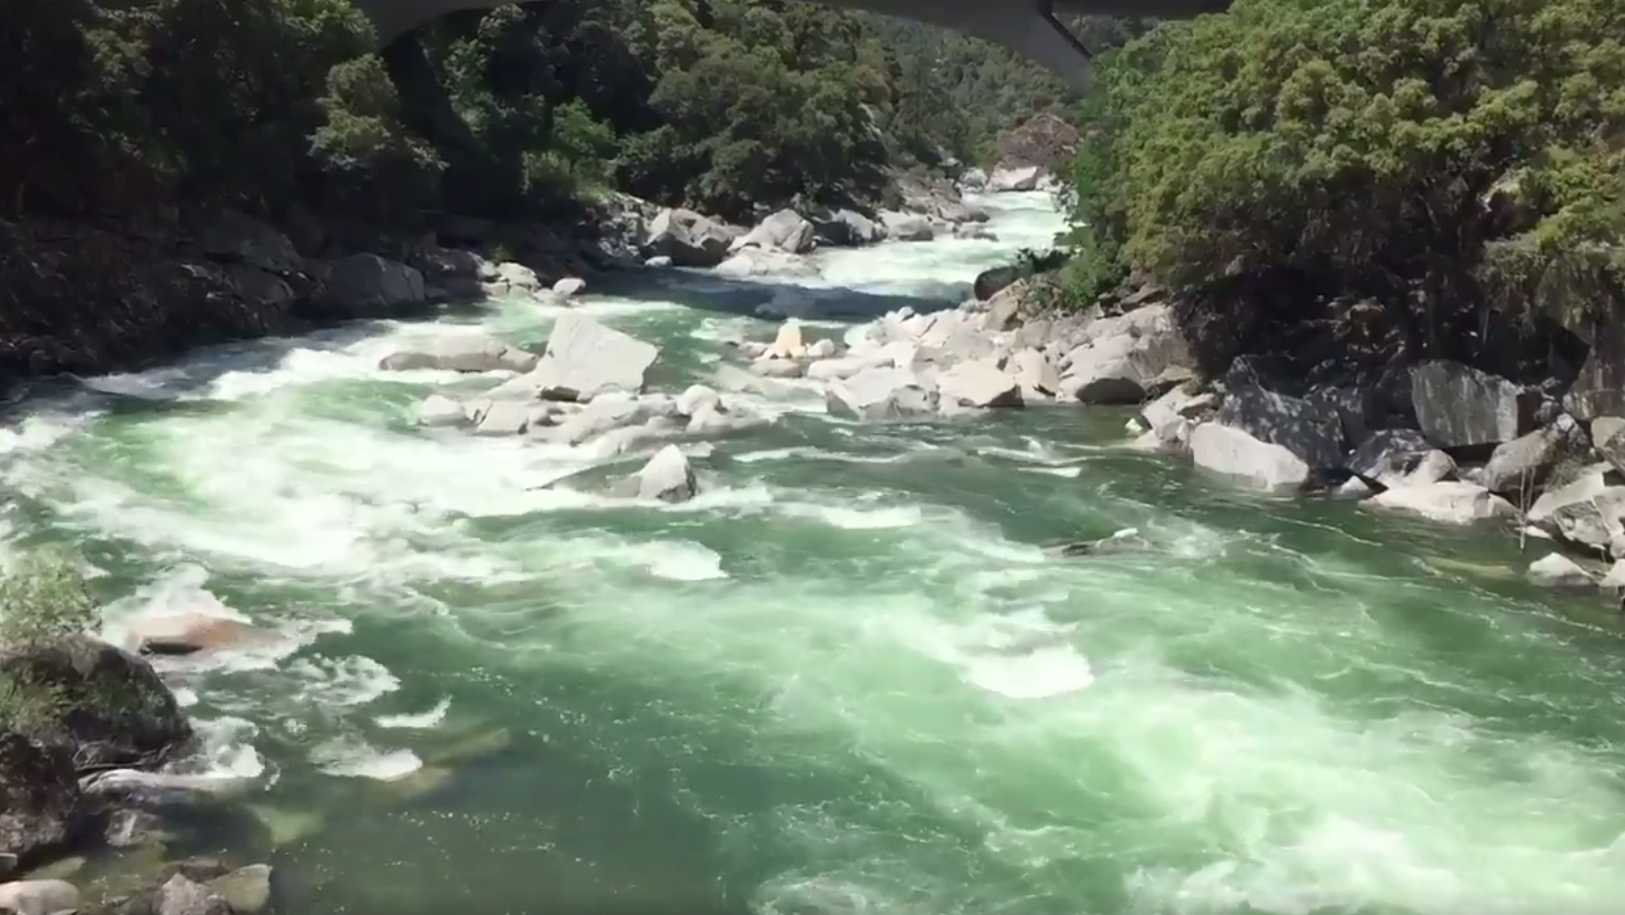 View of the Yuba River from the Highway 49 bridge on Tuesday, May 30, 2017.